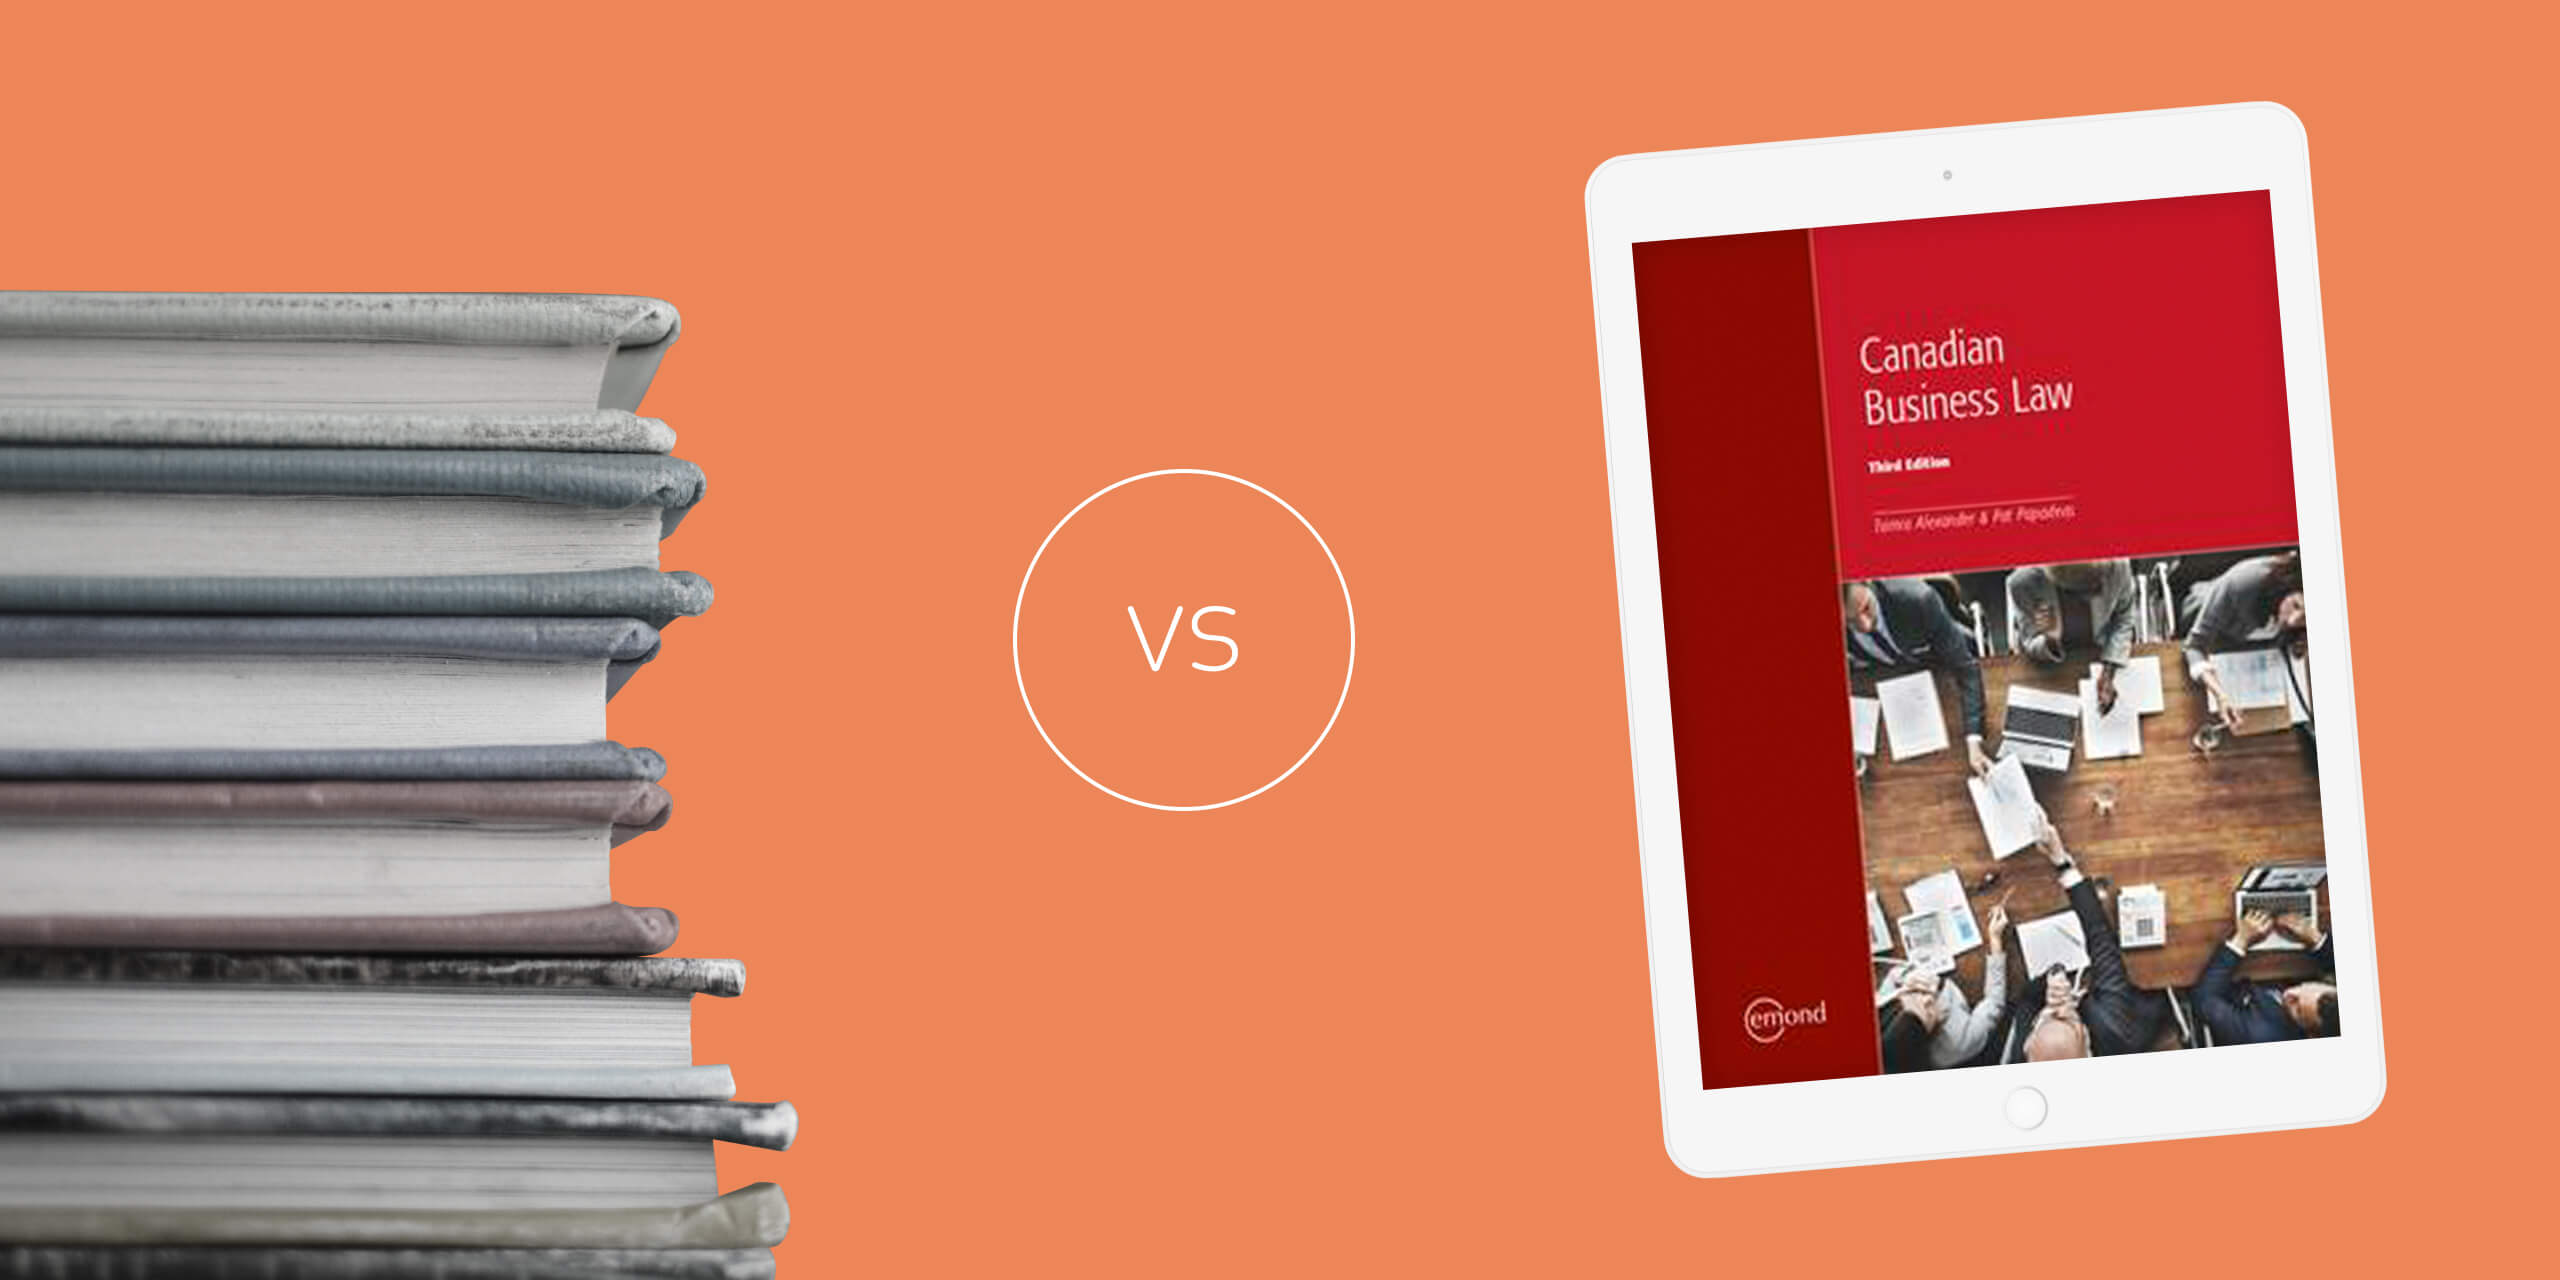 Canadian Business Law Textbooks: Which Is The Best?